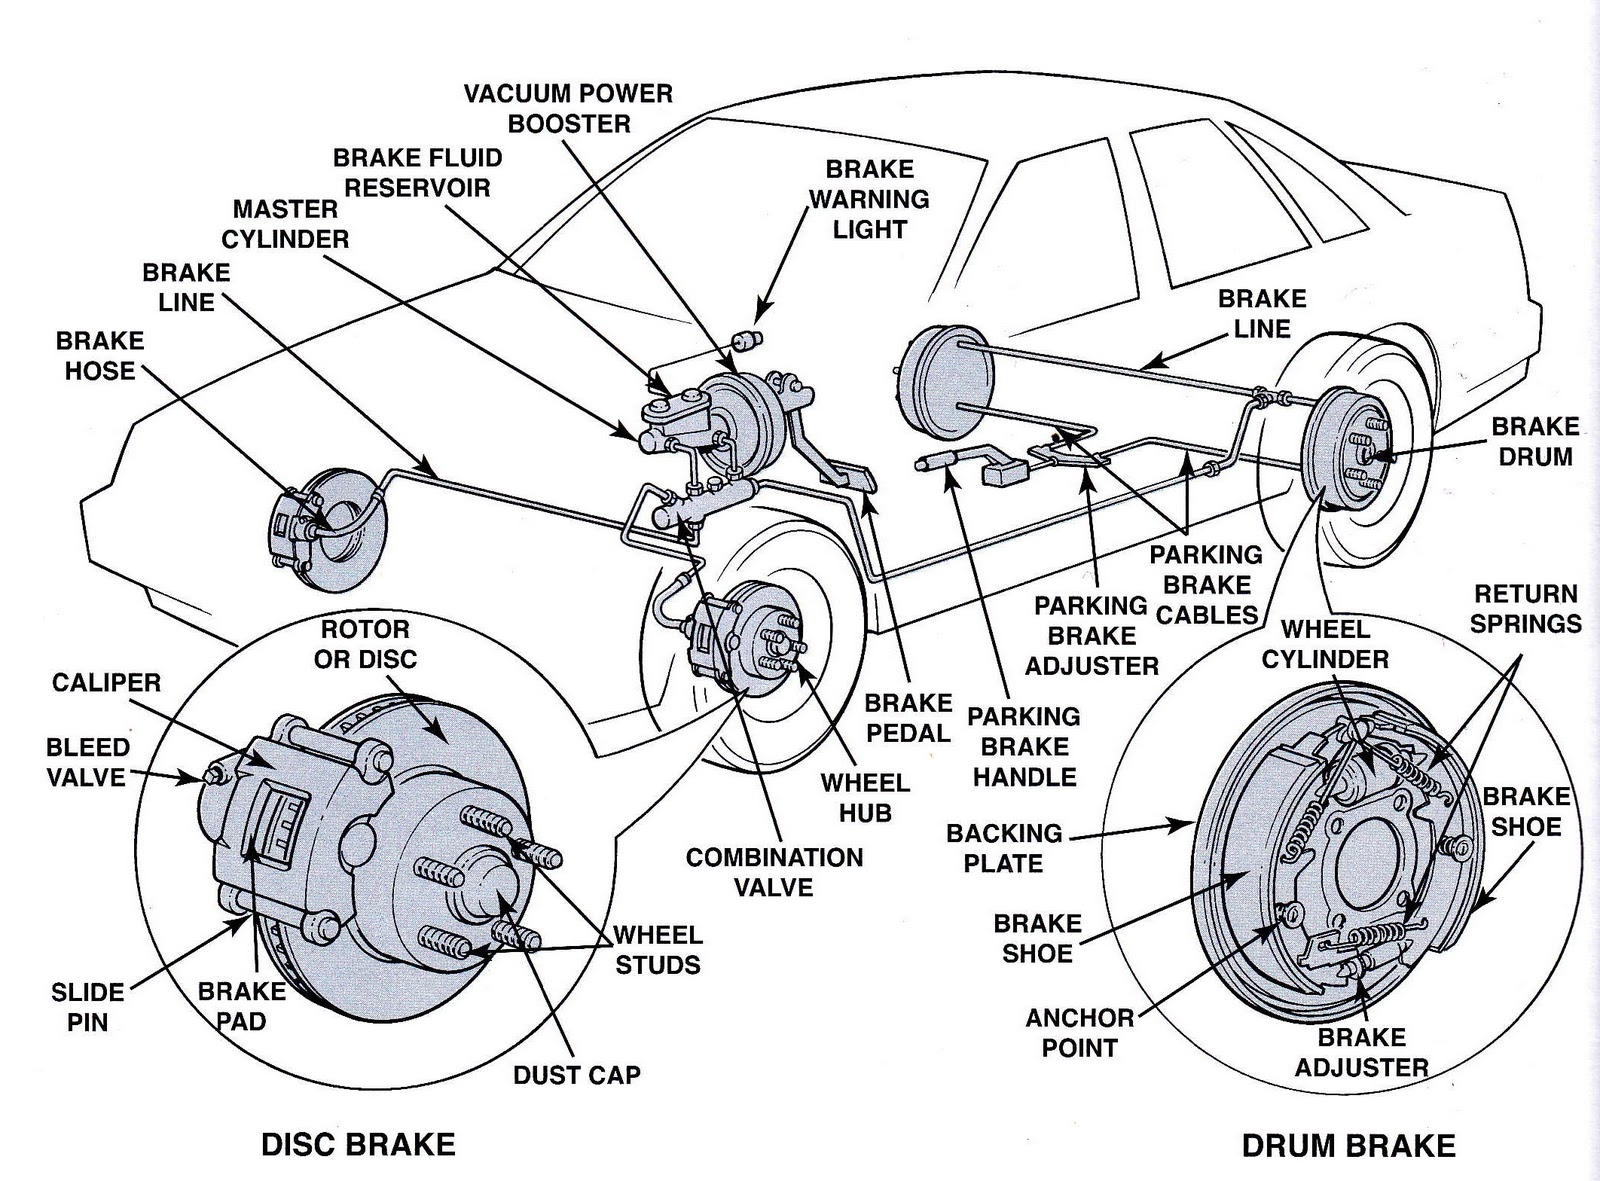 Chevrolet 5 7 Liter V8 Engine Diagram Sensors furthermore Schematics h further Fundamental Of Braking System besides Buick 3800 Engine Diagram also Schematics b. on ford ranger brake line diagram